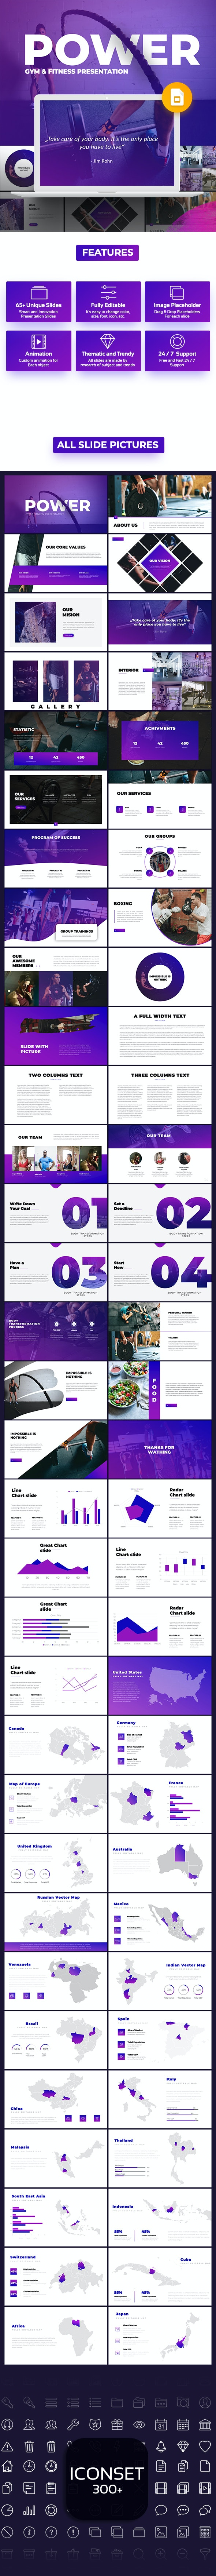 Power -  Fitness and Gym Google Slides - Business PowerPoint Templates